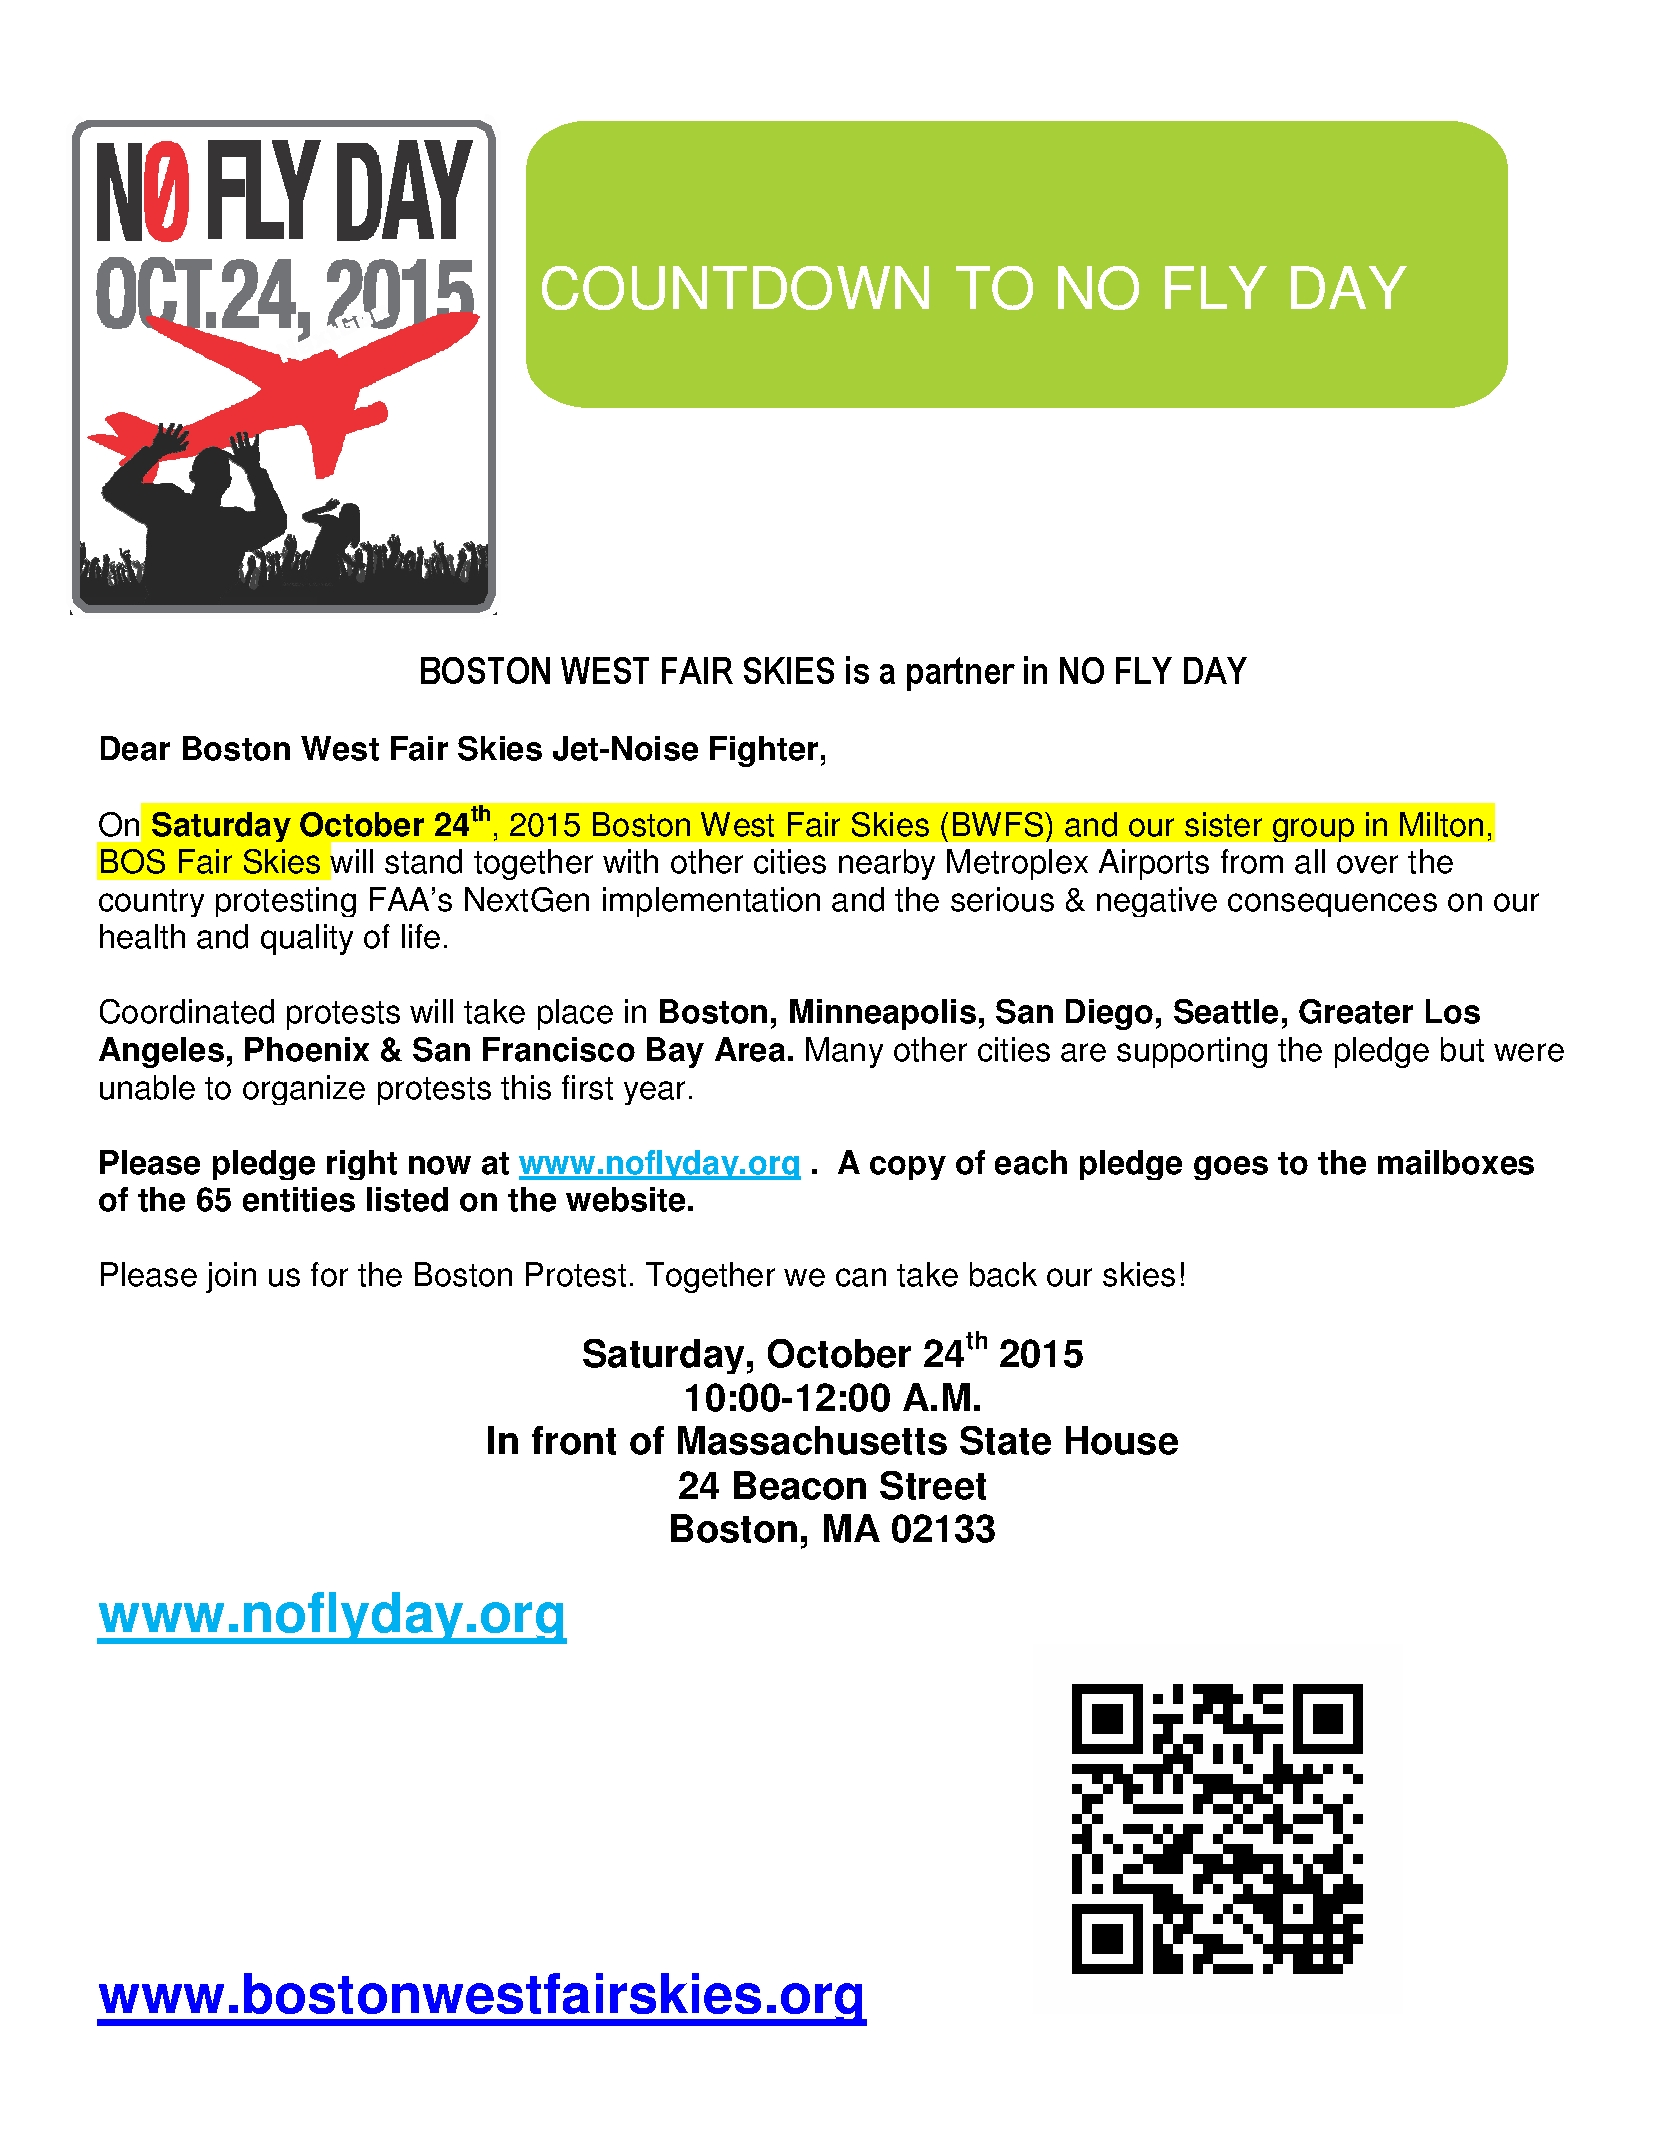 20151024.. No Fly Day flyer, KBOS version (A.Poole, 10-12-2015)